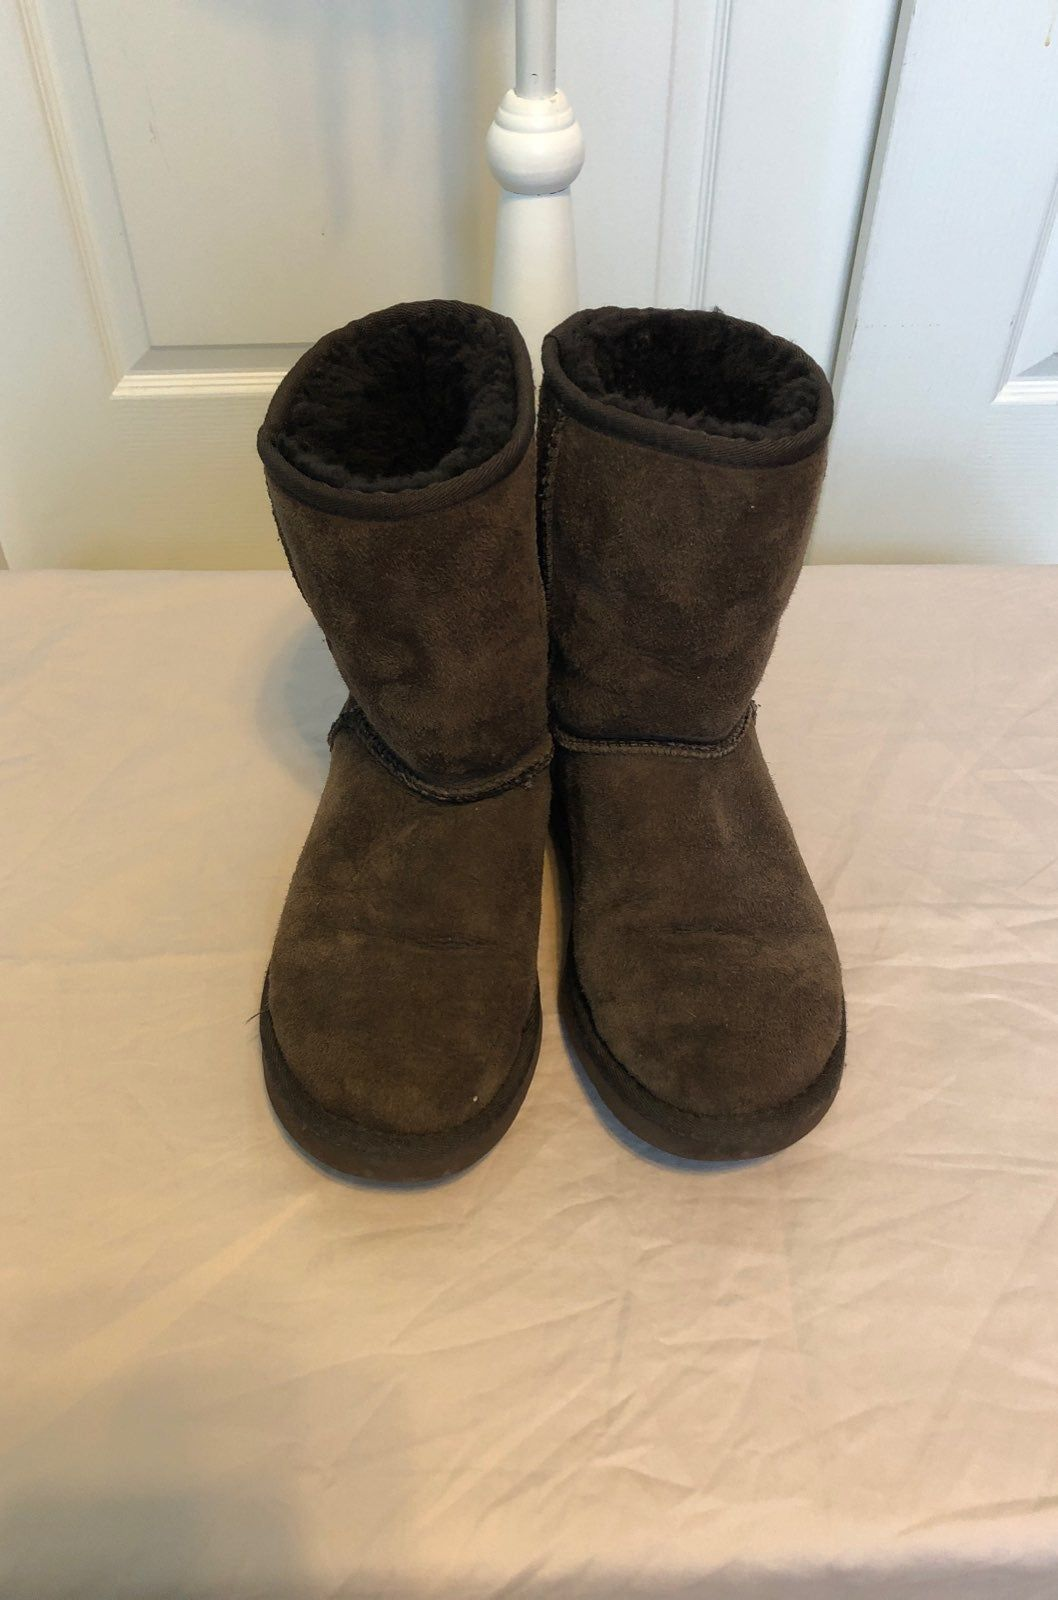 Chocolate Brown Ugg Boots. I wore these